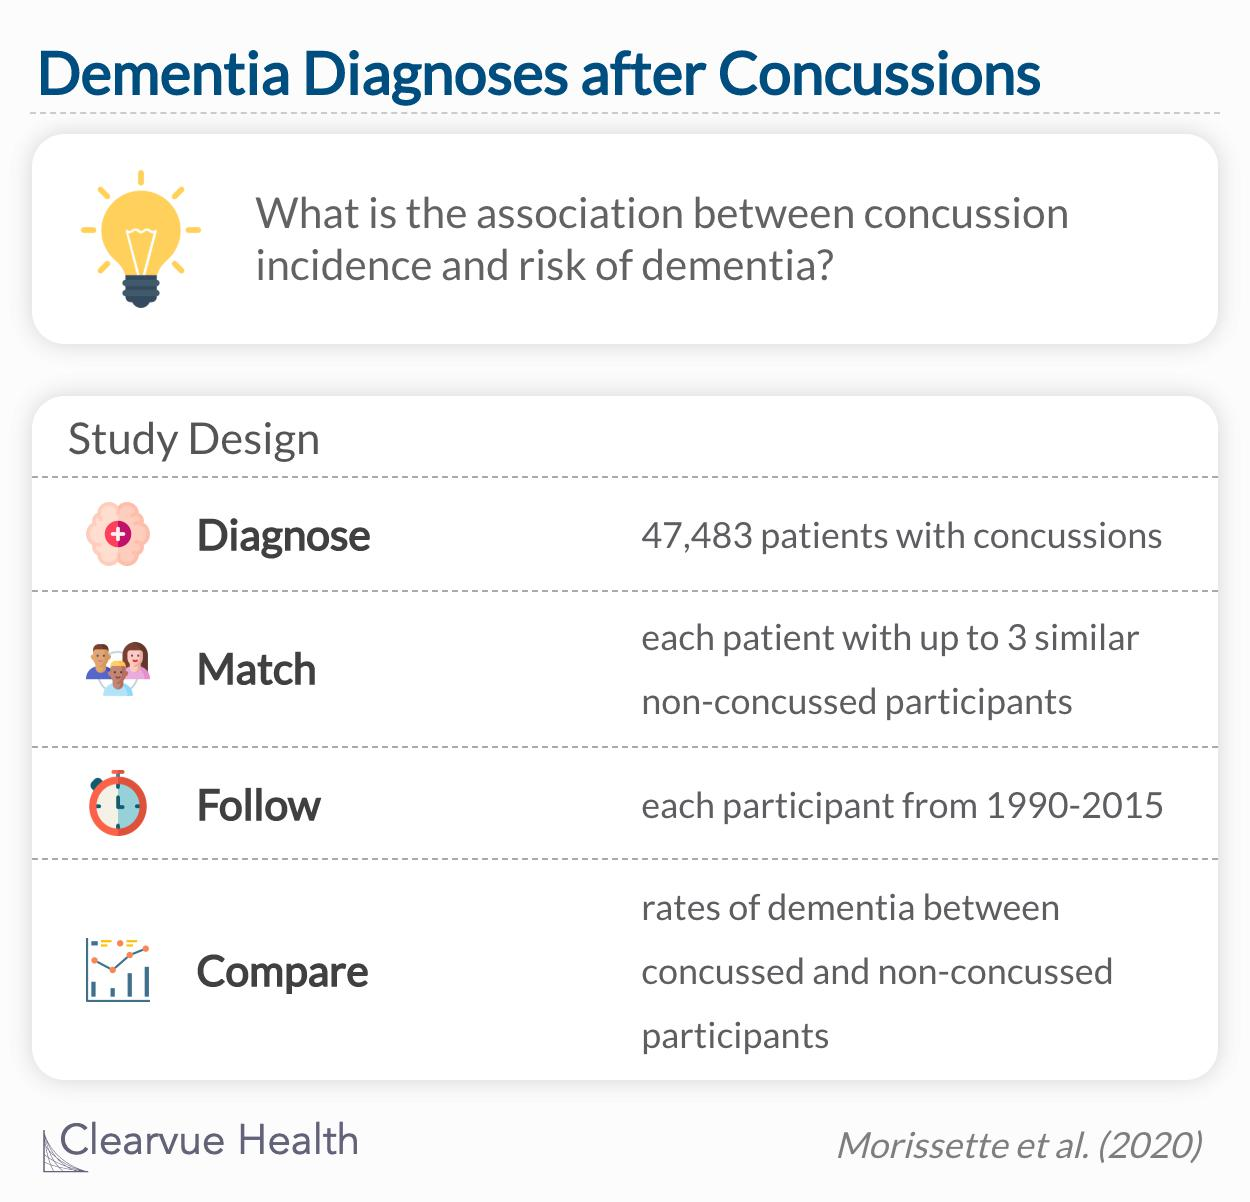 dementia and concussion study design